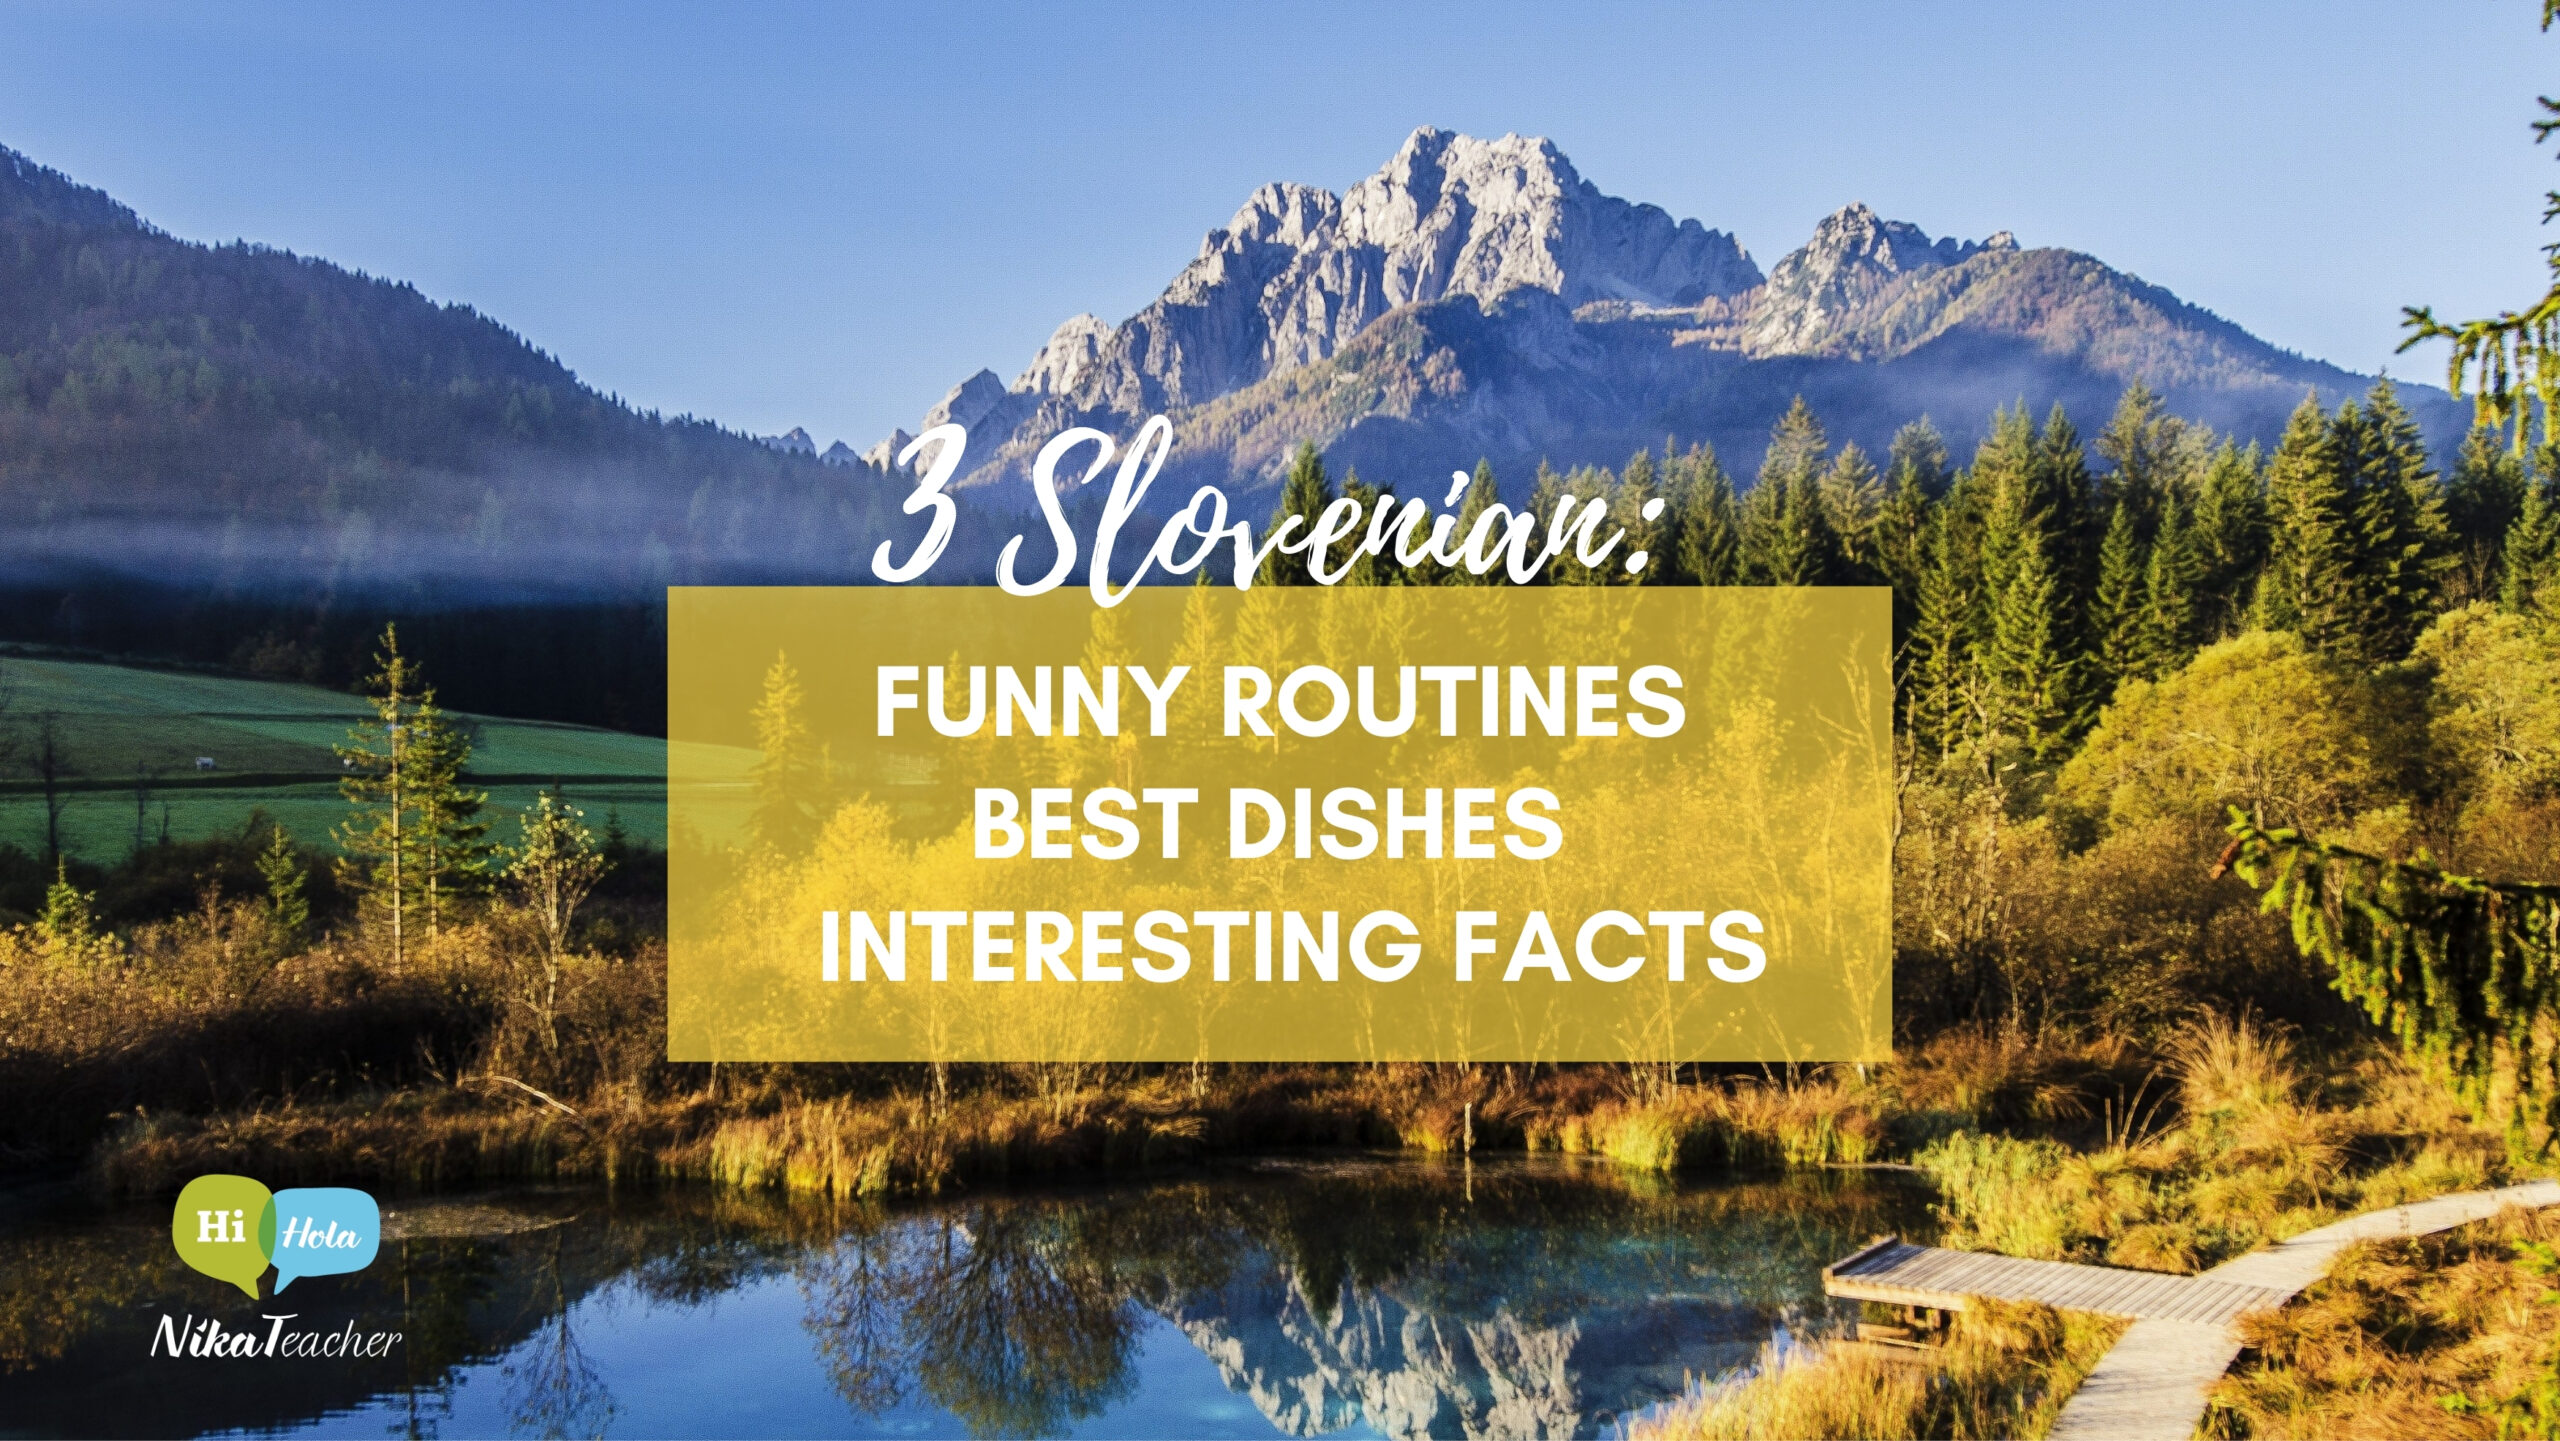 3 Slovenian funny routines 3 Slovenian best dishes 3 Slovenian interesting facts